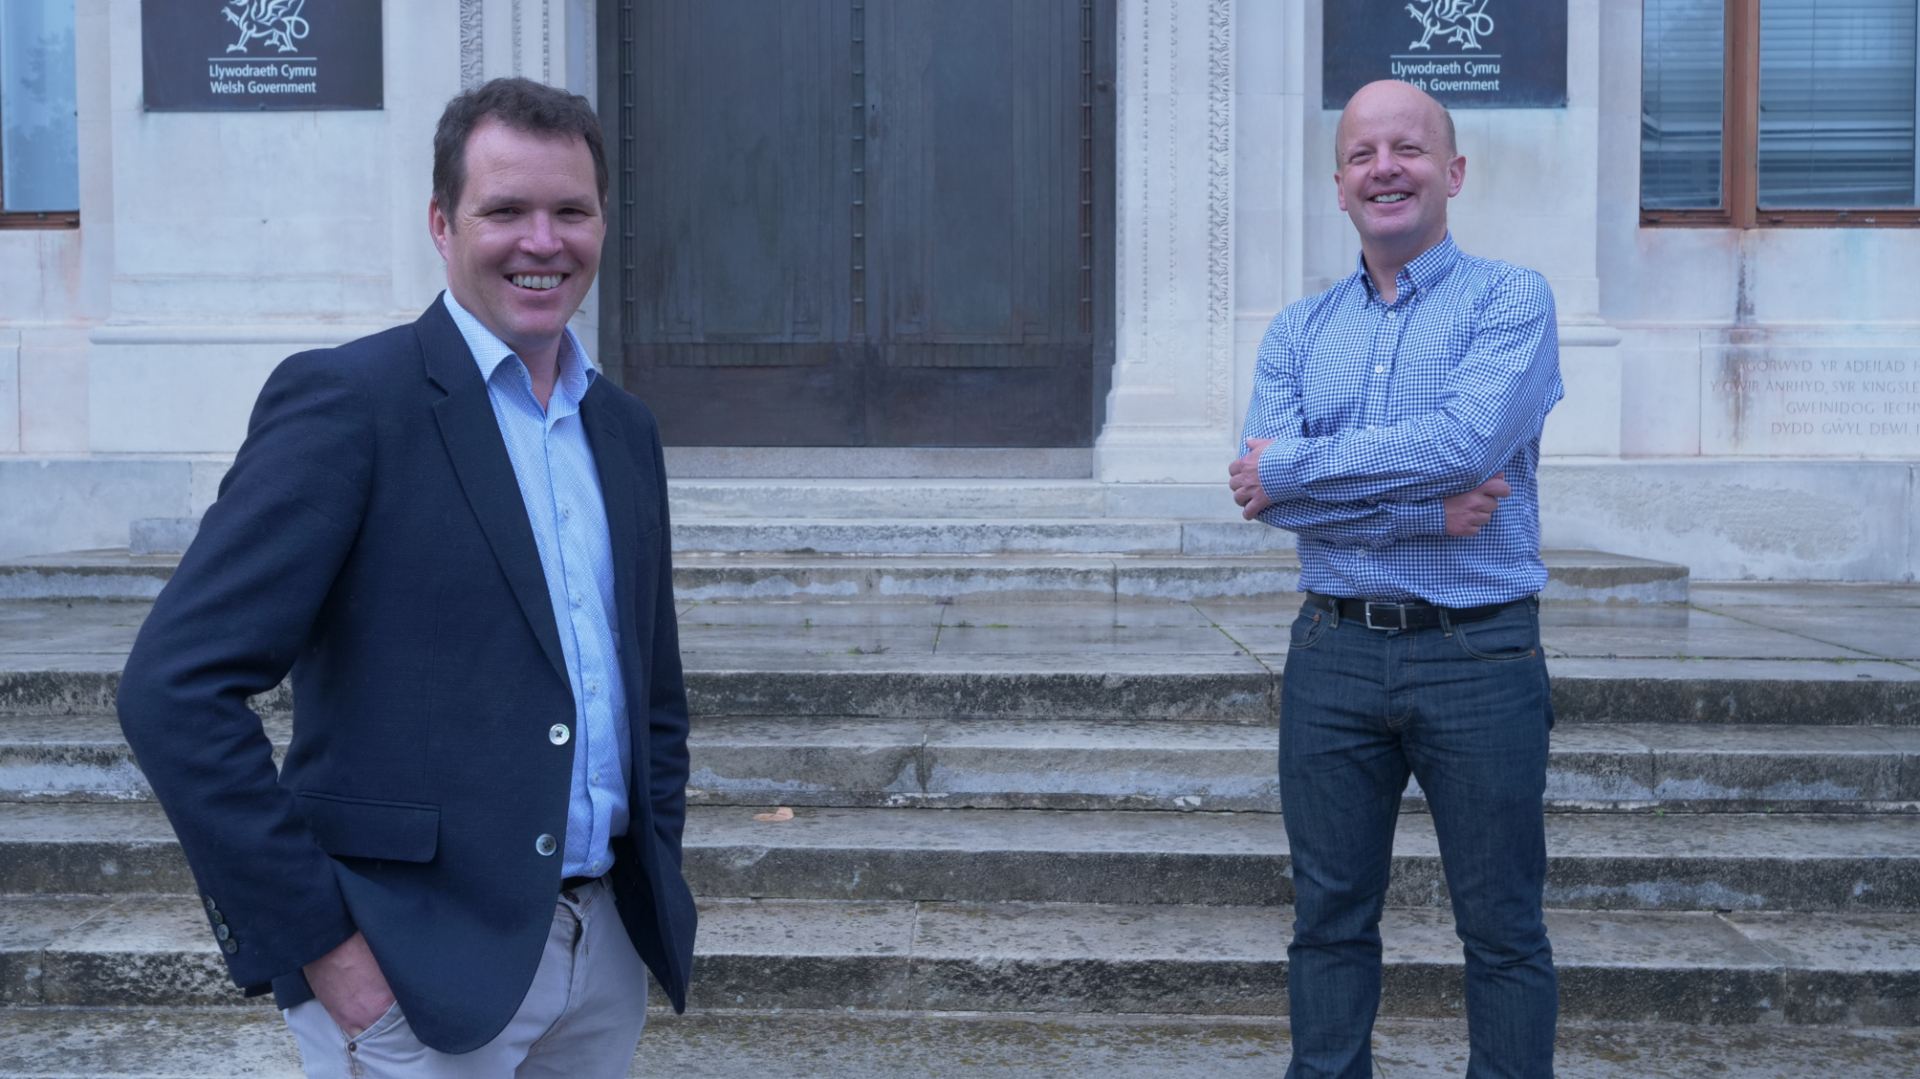 Lee Walters, Deputy Minister for Economy and Transport and Dr Dafydd Trystan Davies new Chair of the Active Travel Board